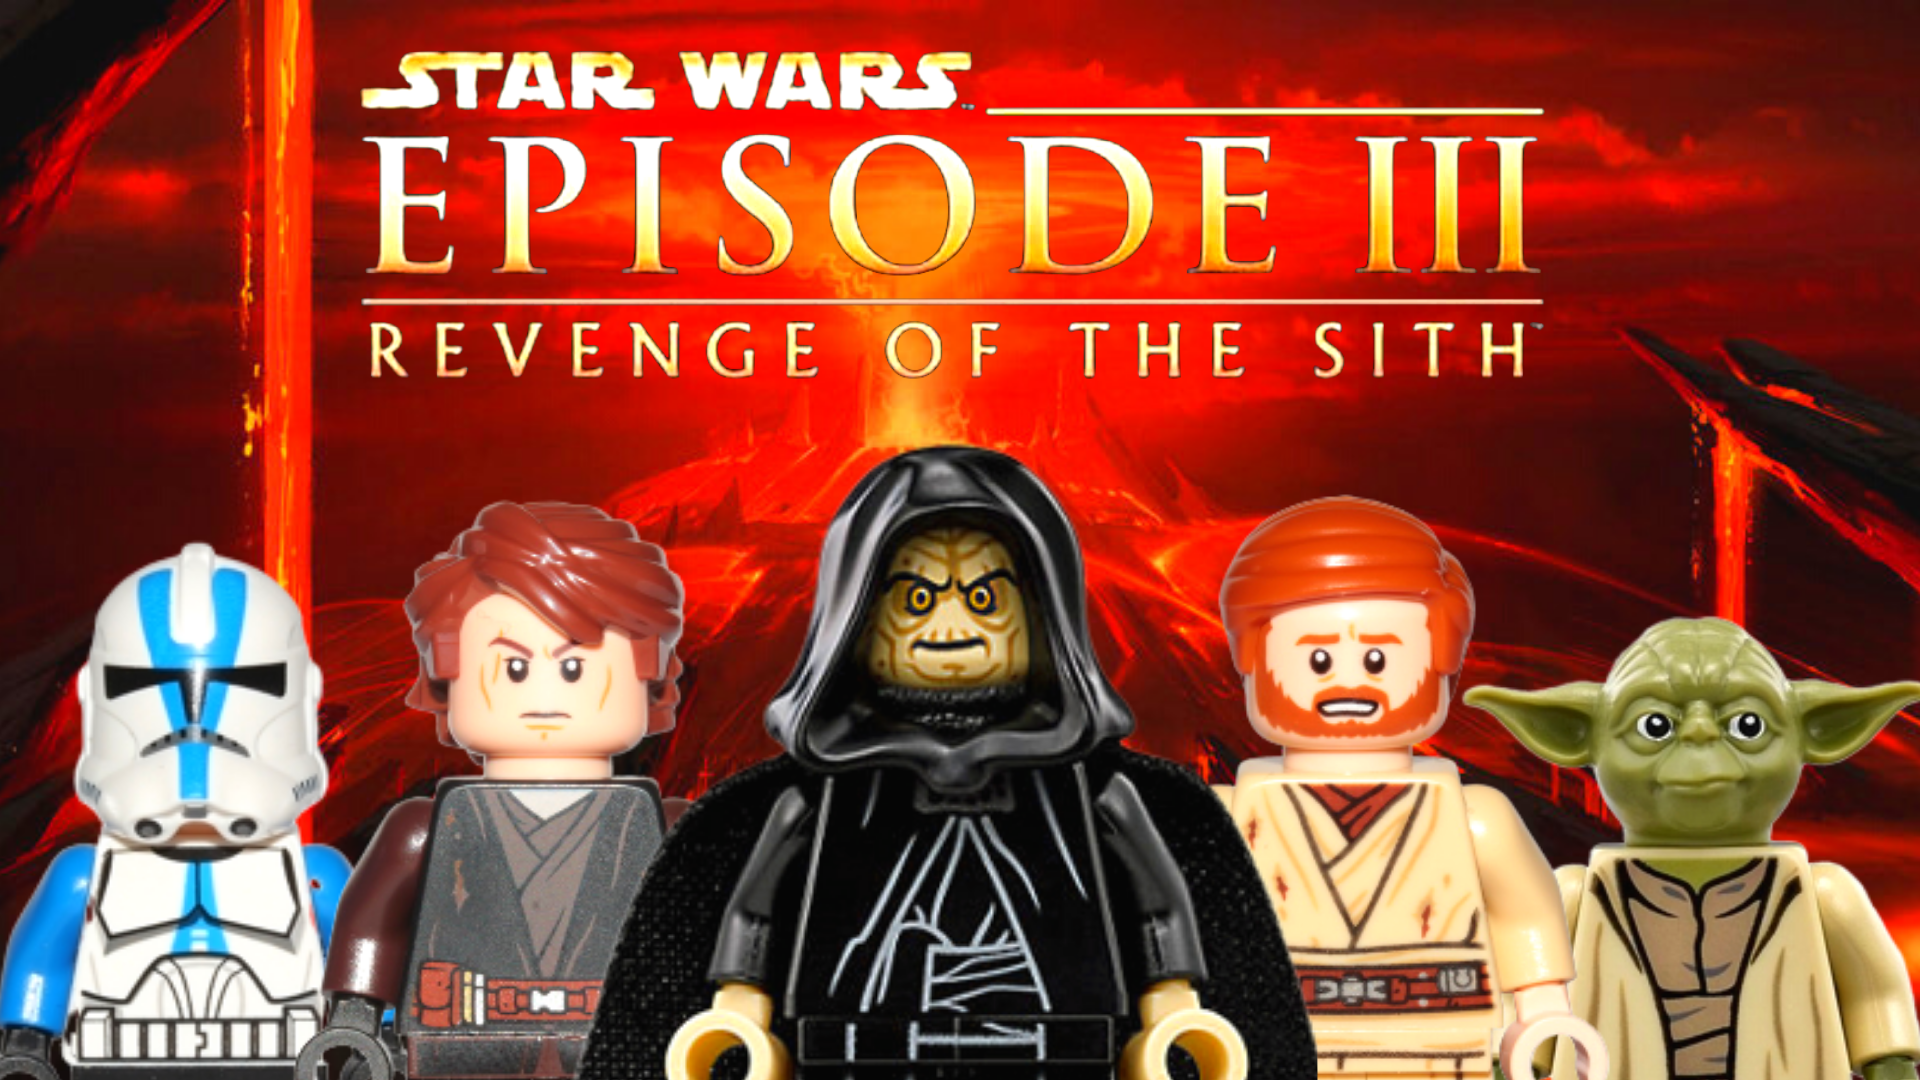 Revenge Of The Sith All Lego Star Wars Minifigures From Episode 3